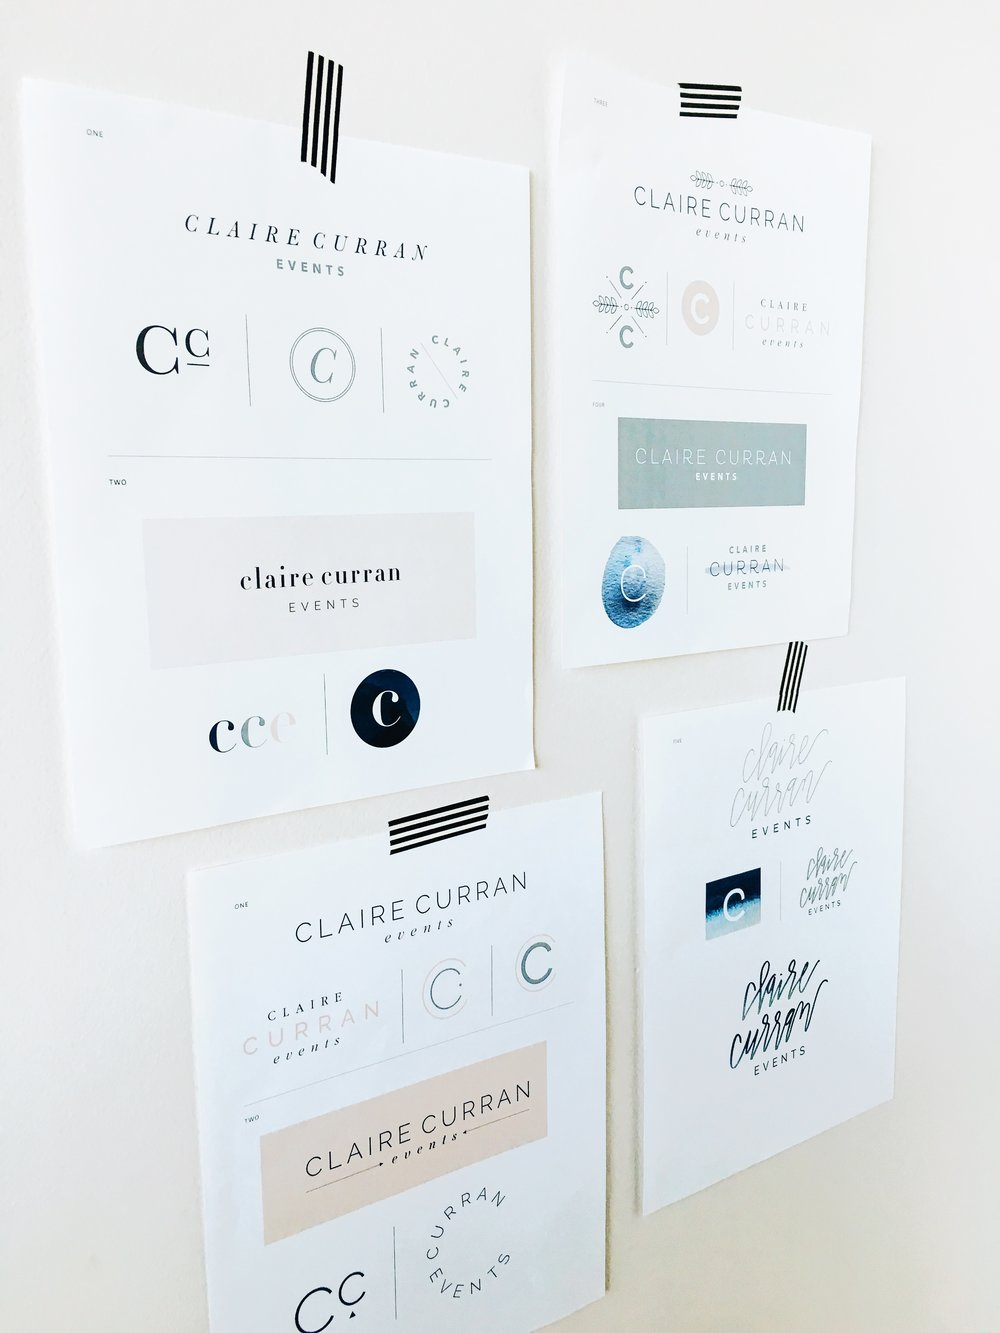 Various logo iterations for Claire Curran Events